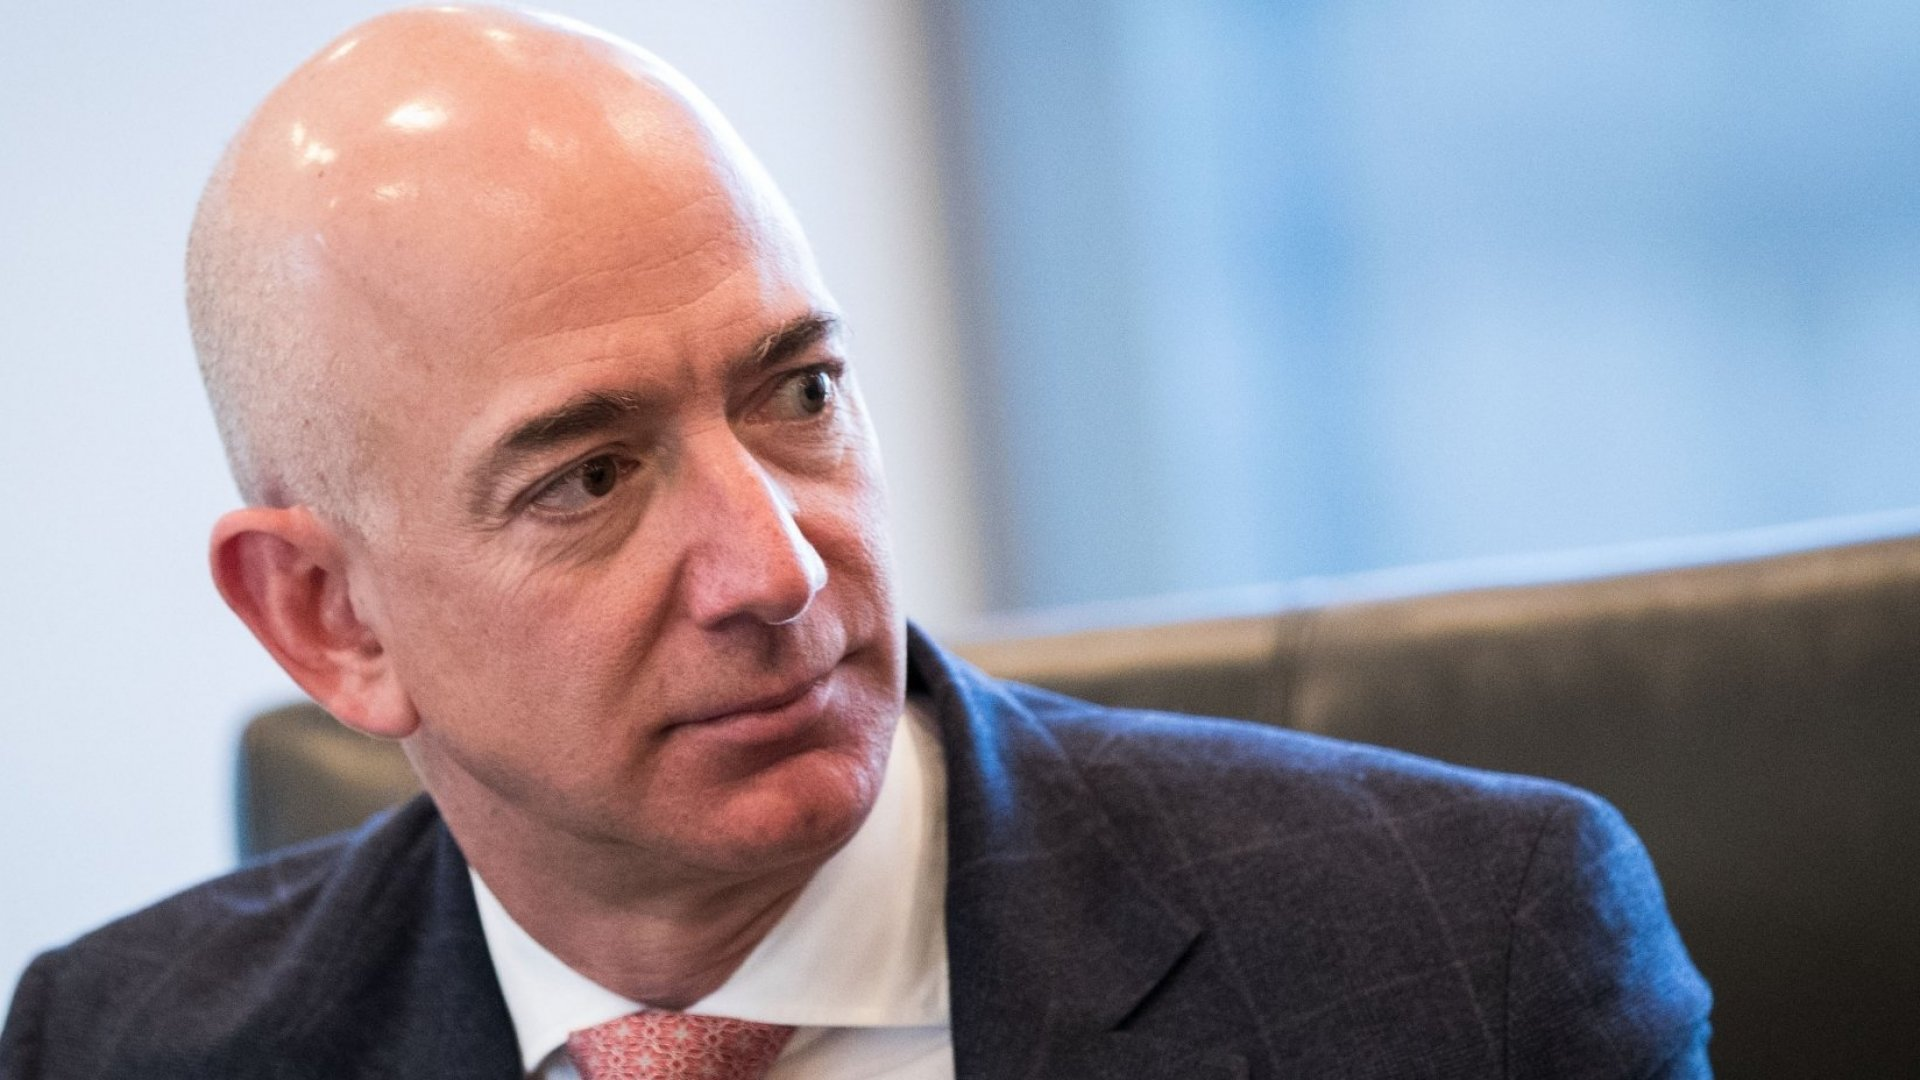 National Enquirer Threatens to Publish Sexy Bezos Selfies--so He Publishes Their Threat